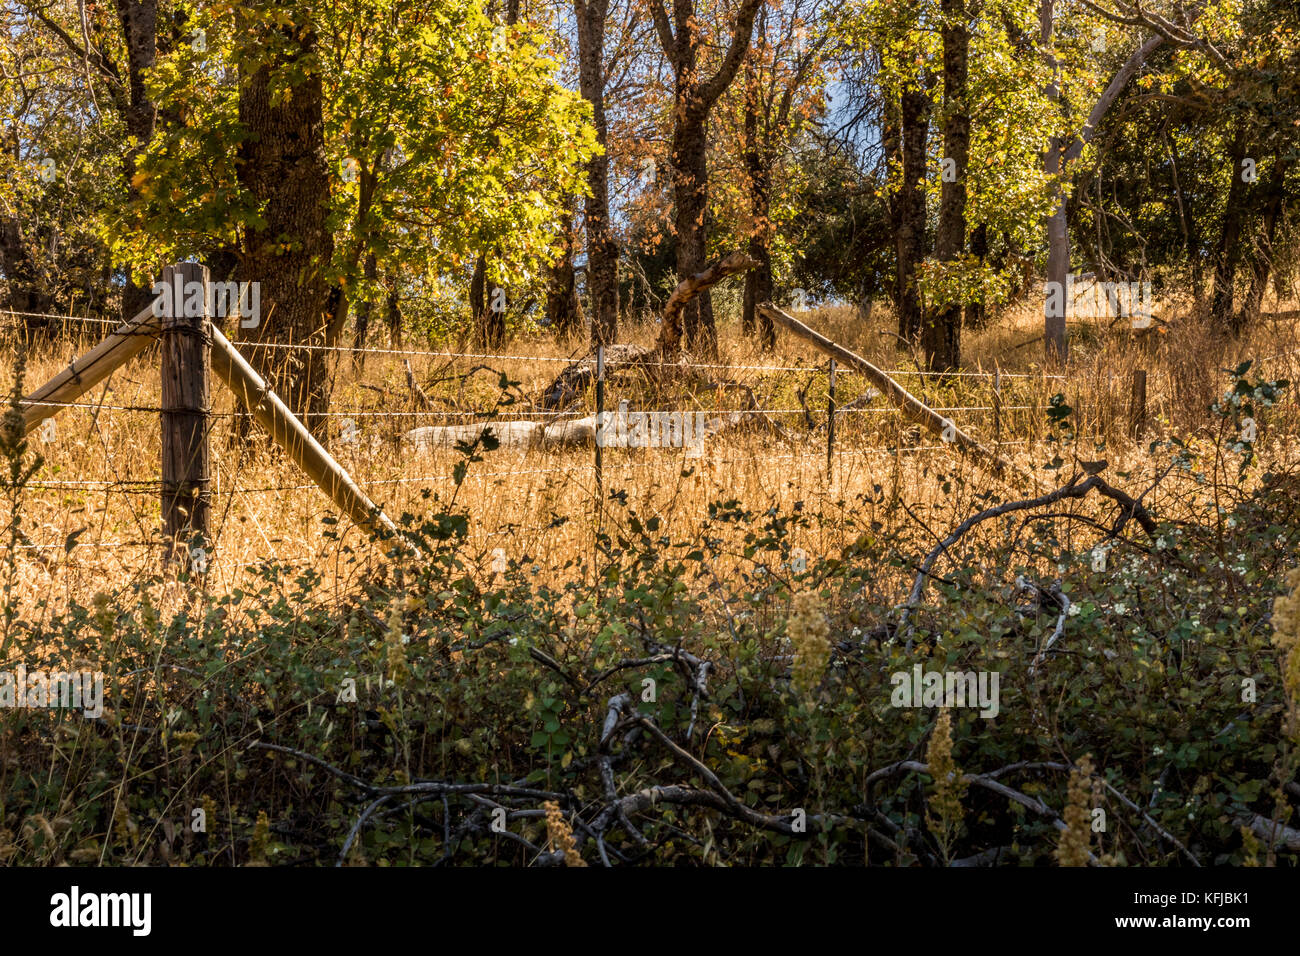 Rusted, old wood and barbed wire fence vanishing into distance, in country landscape of green shrubs in foreground, - Stock Image